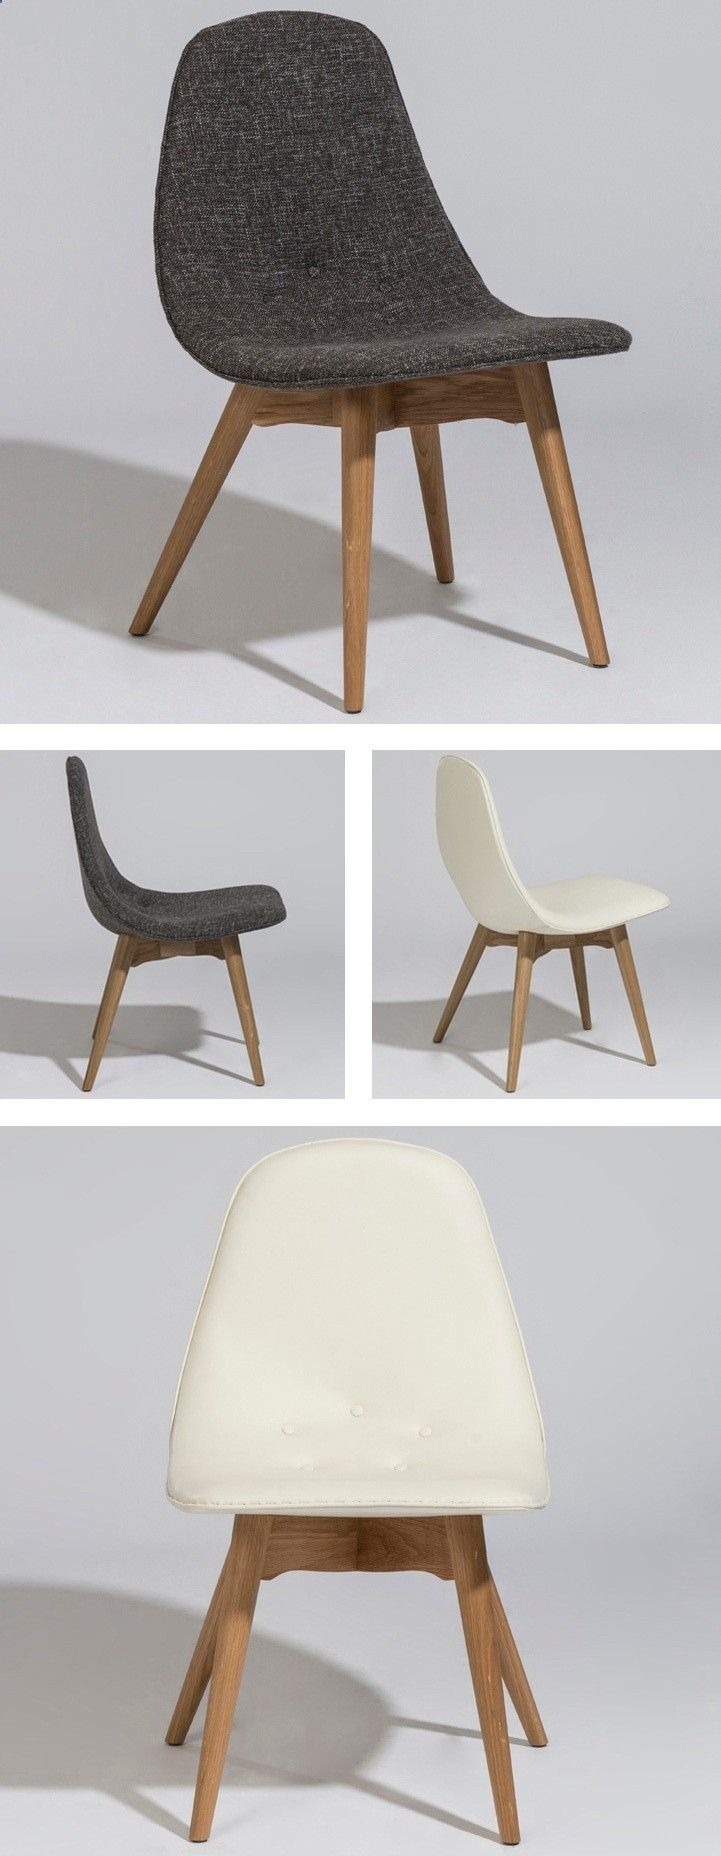 Contour dining chair grant featherston home sweet home for Modern dining chairs pinterest